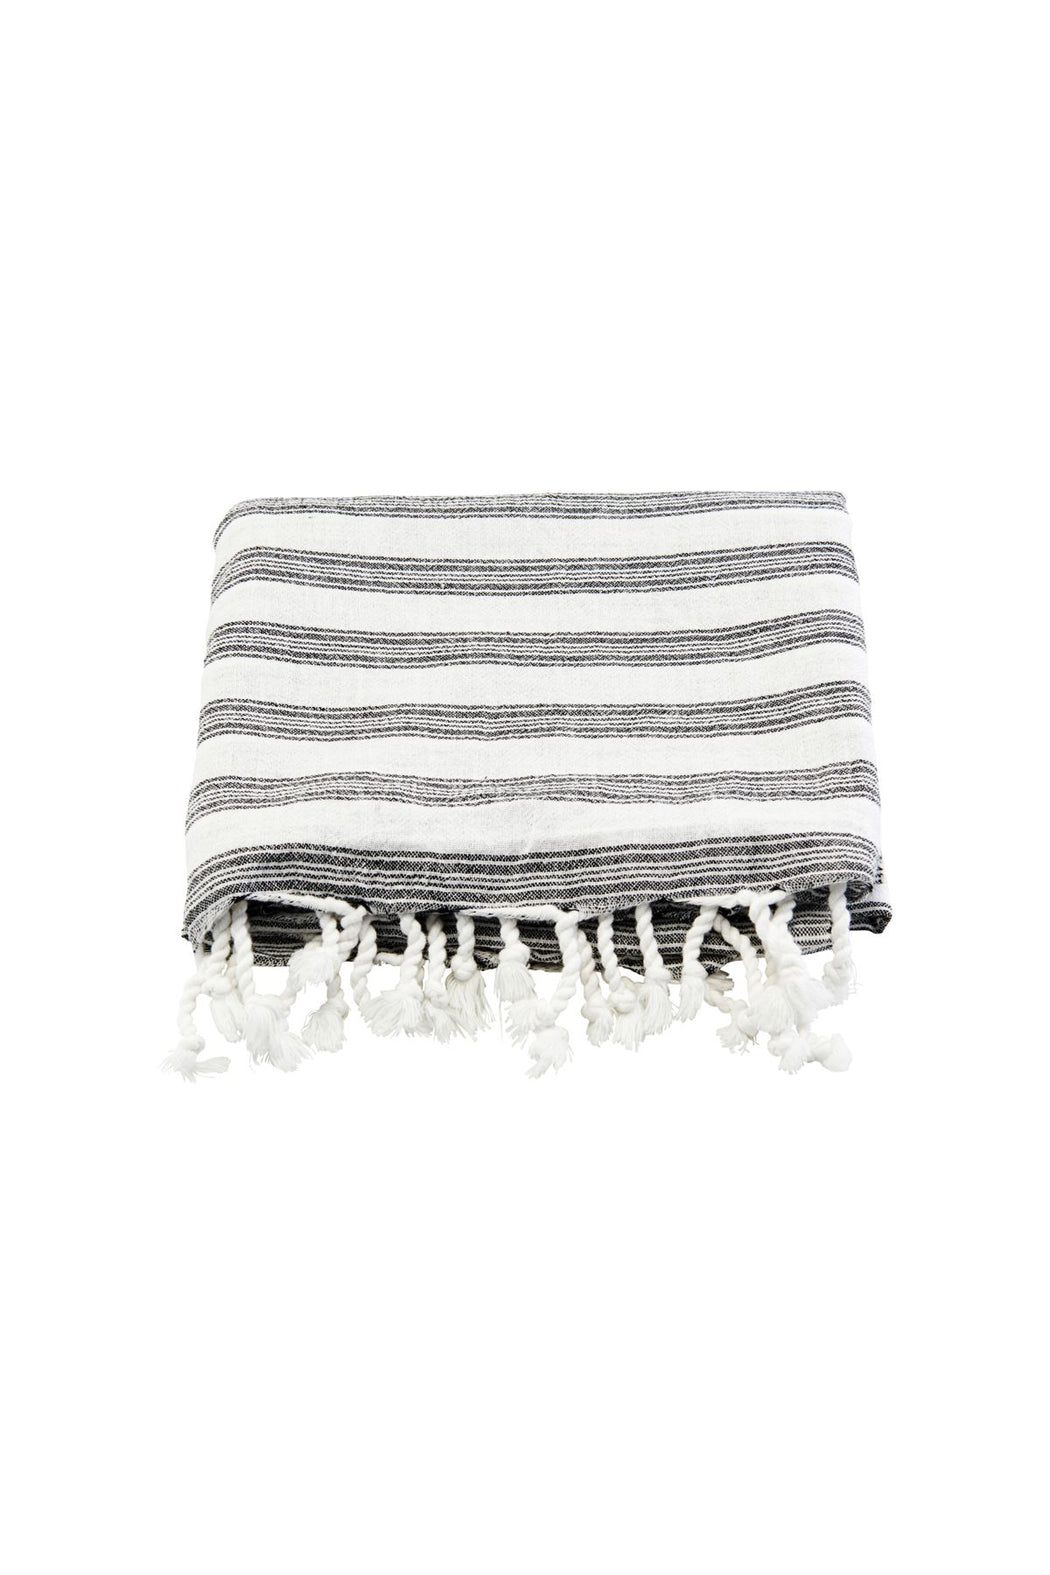 Hammam Bath Towel, Lifestyle, Meraki - 3LittlePicks